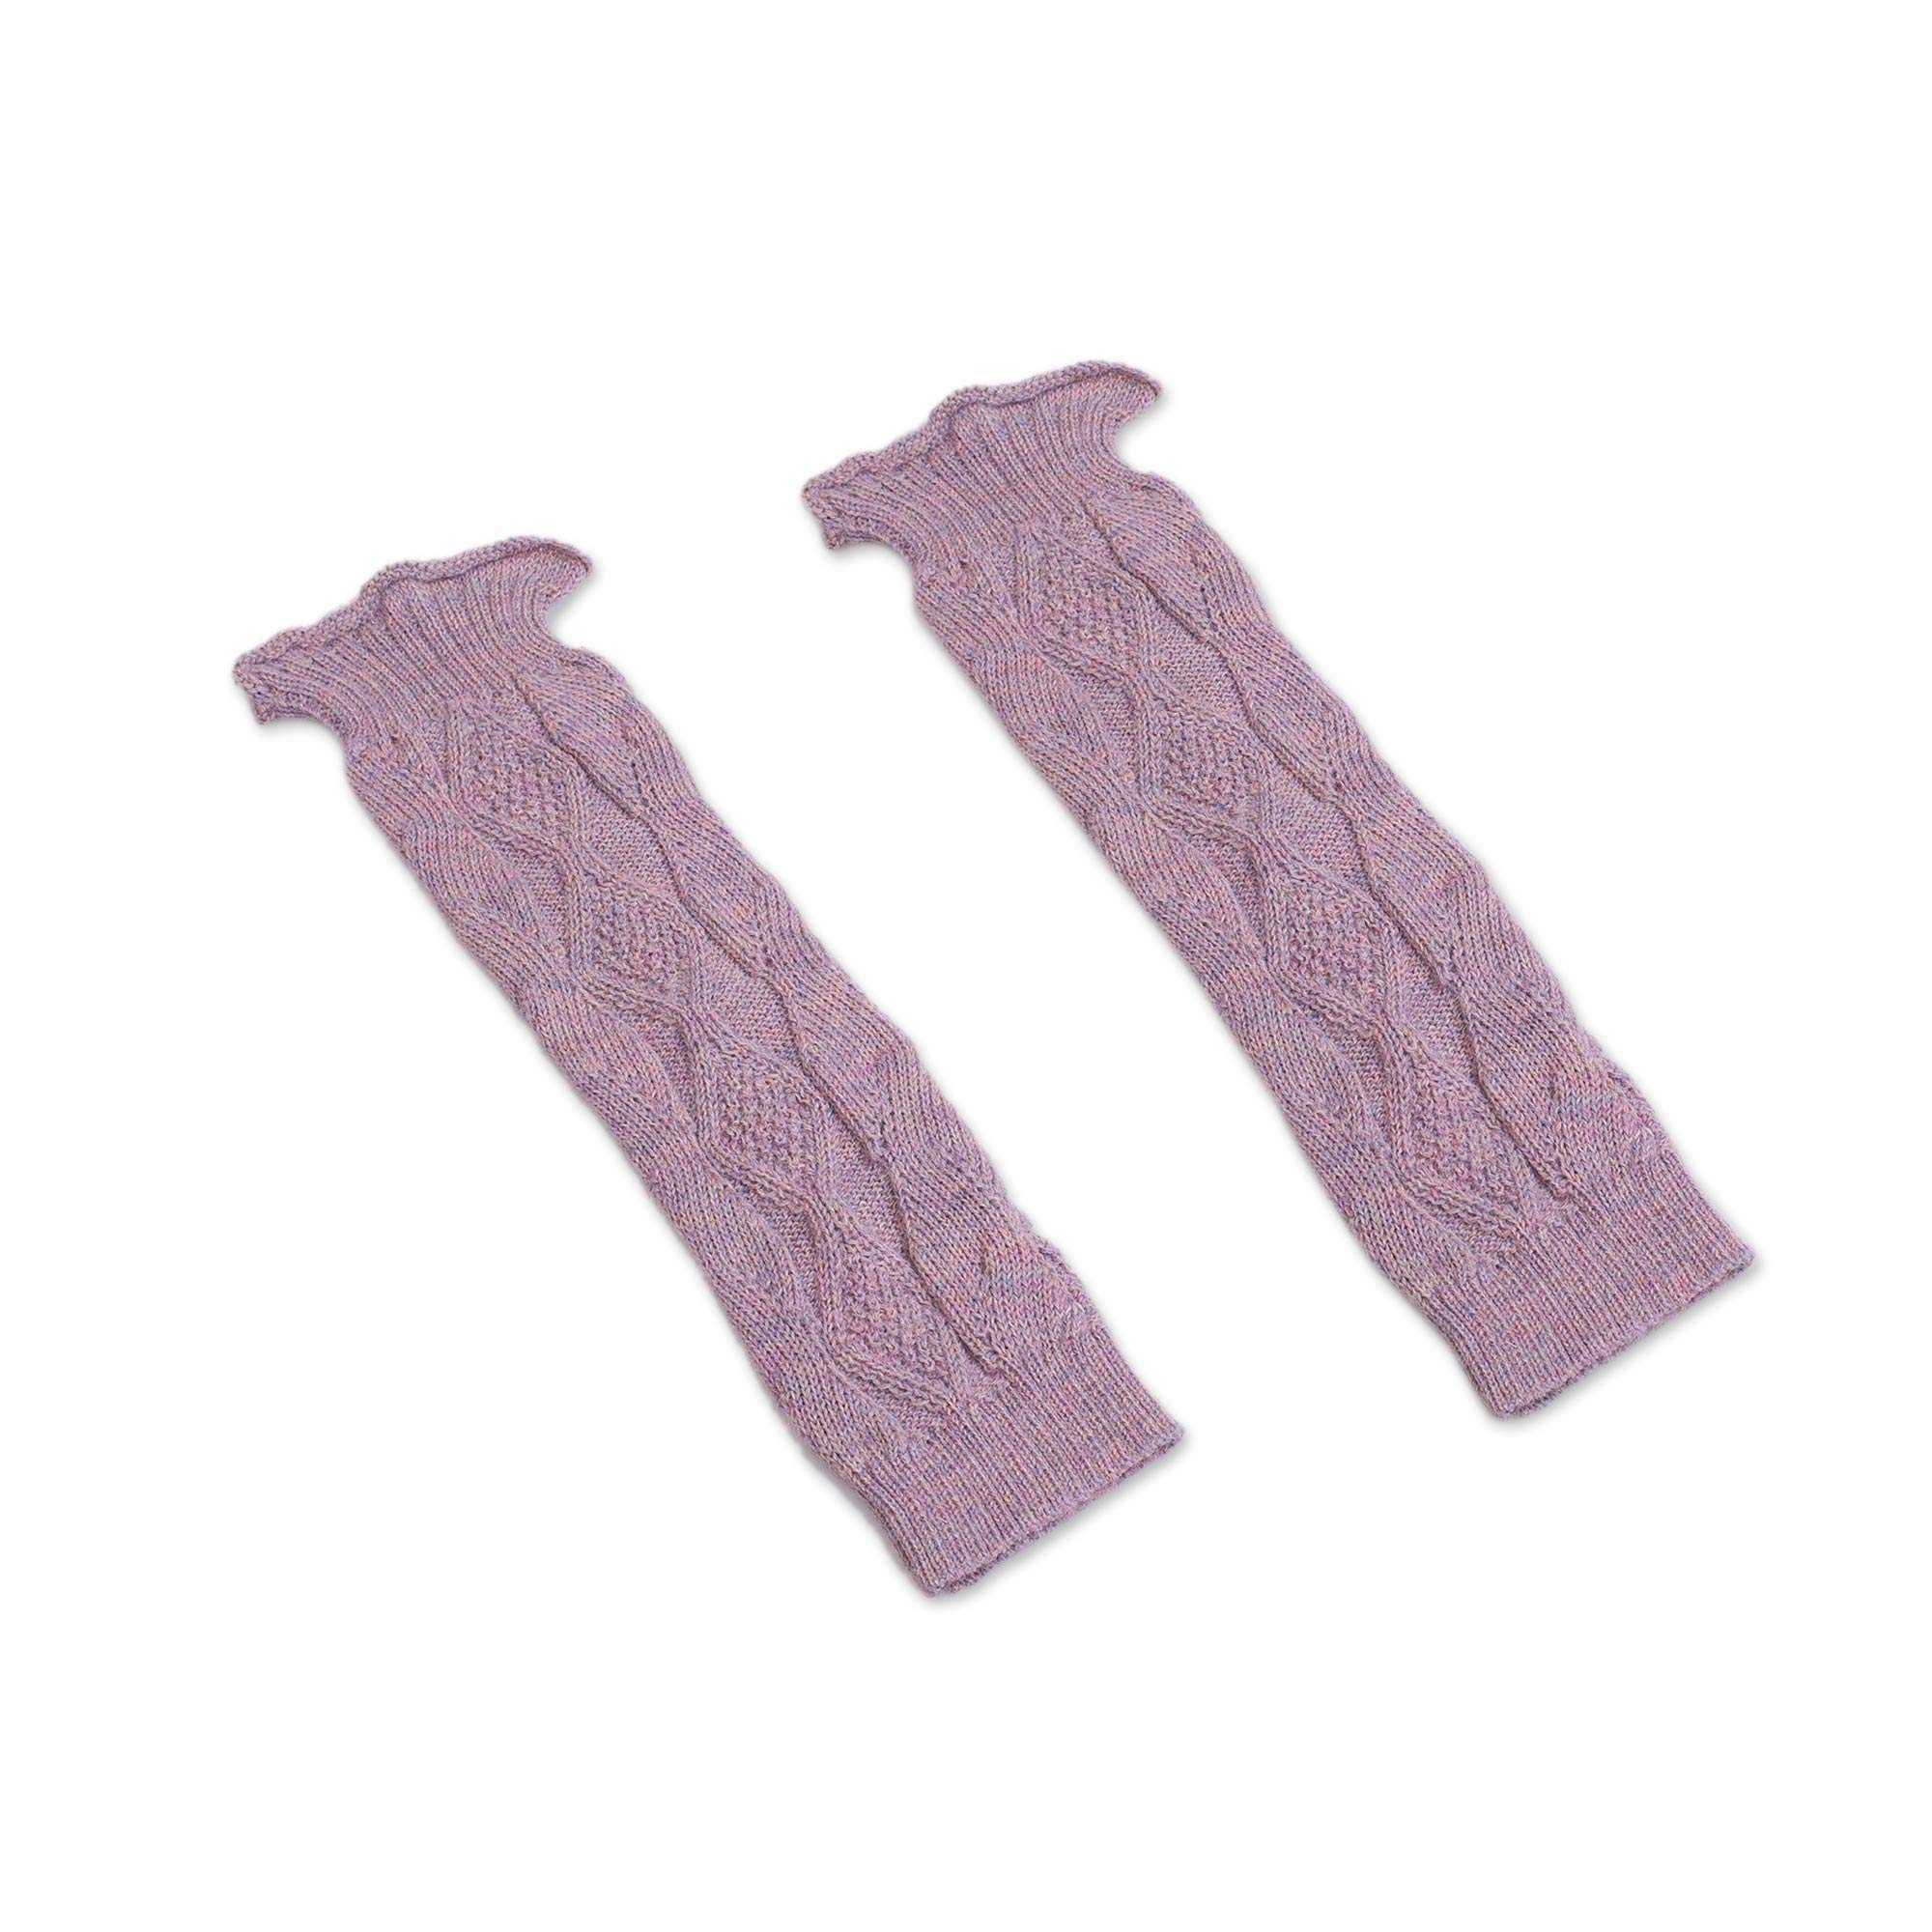 NOVICA Pink 100% Alpaca Leg Warmers, Cozy Rose' by NOVICA